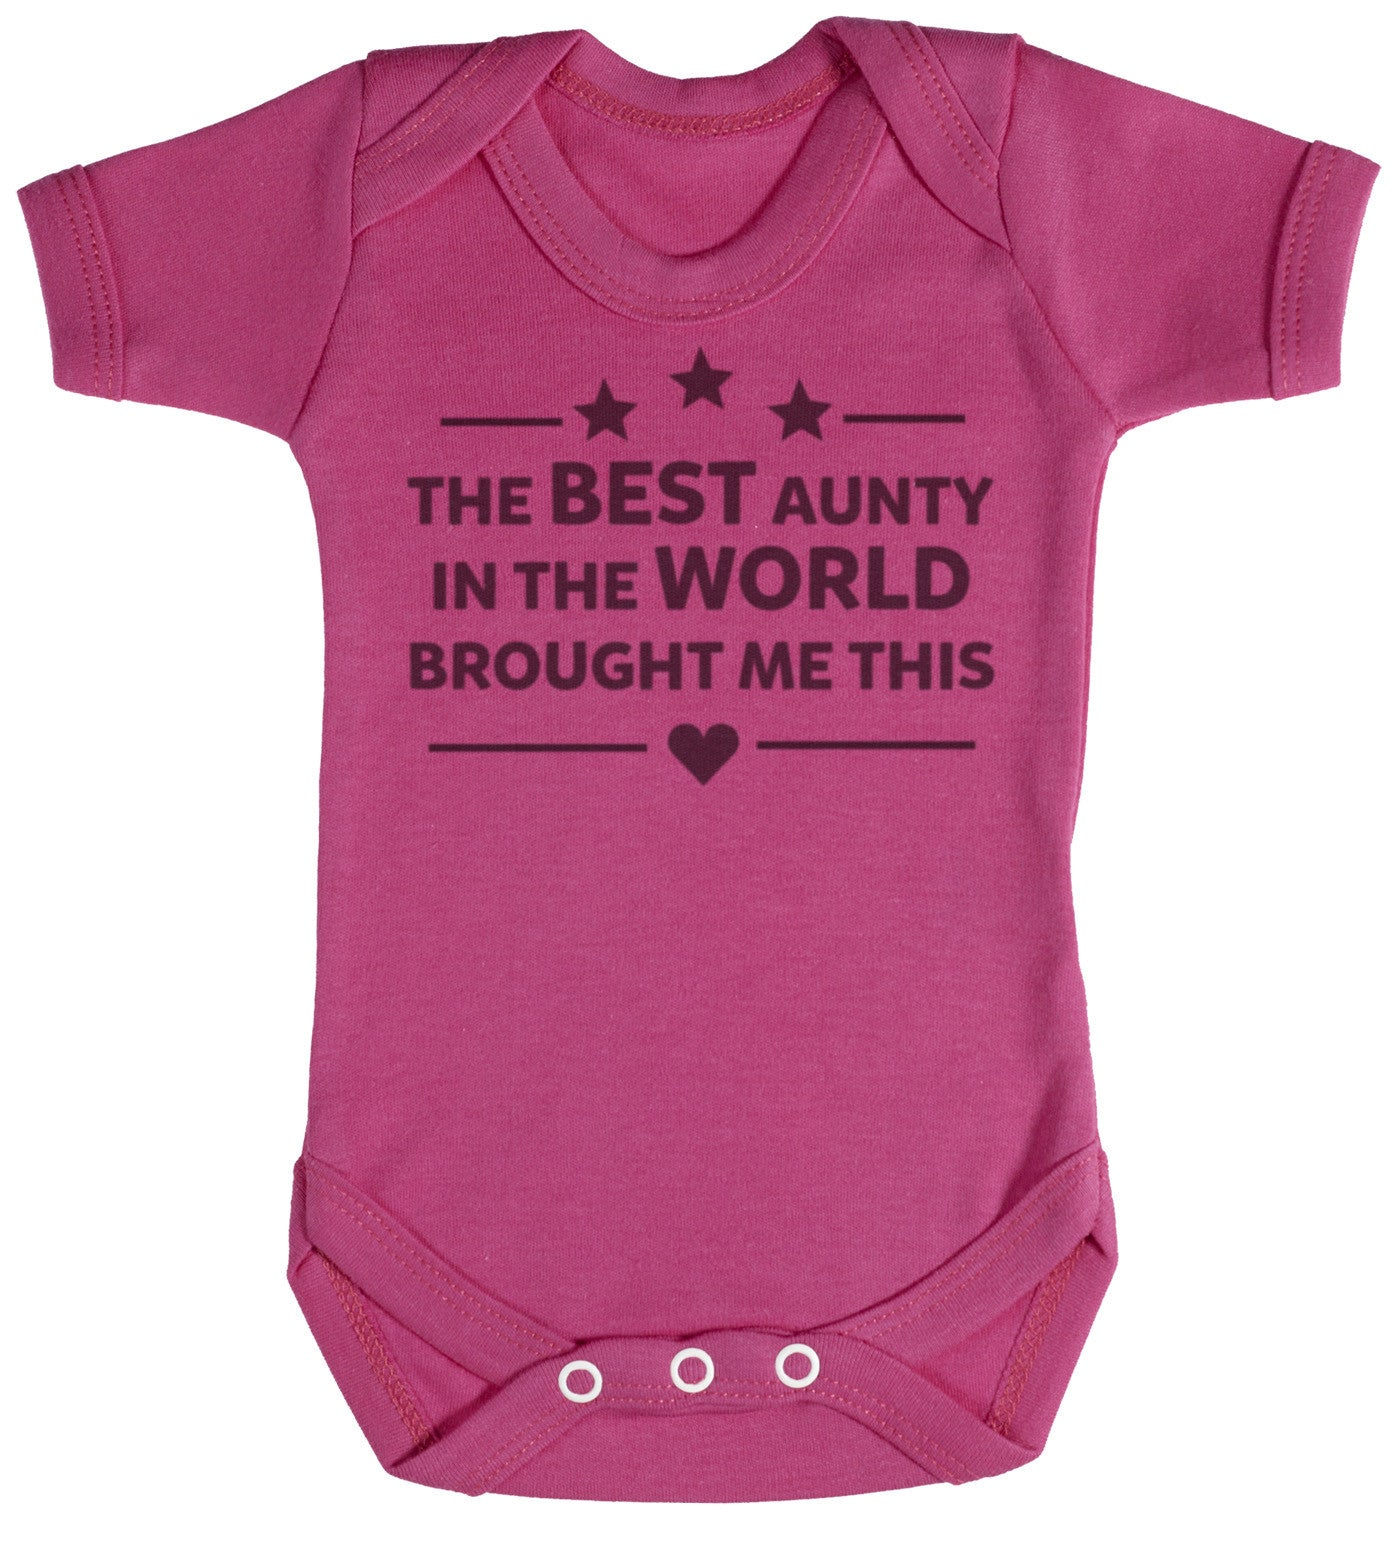 The Best Aunty In The World Baby Bodysuit / Babygrow